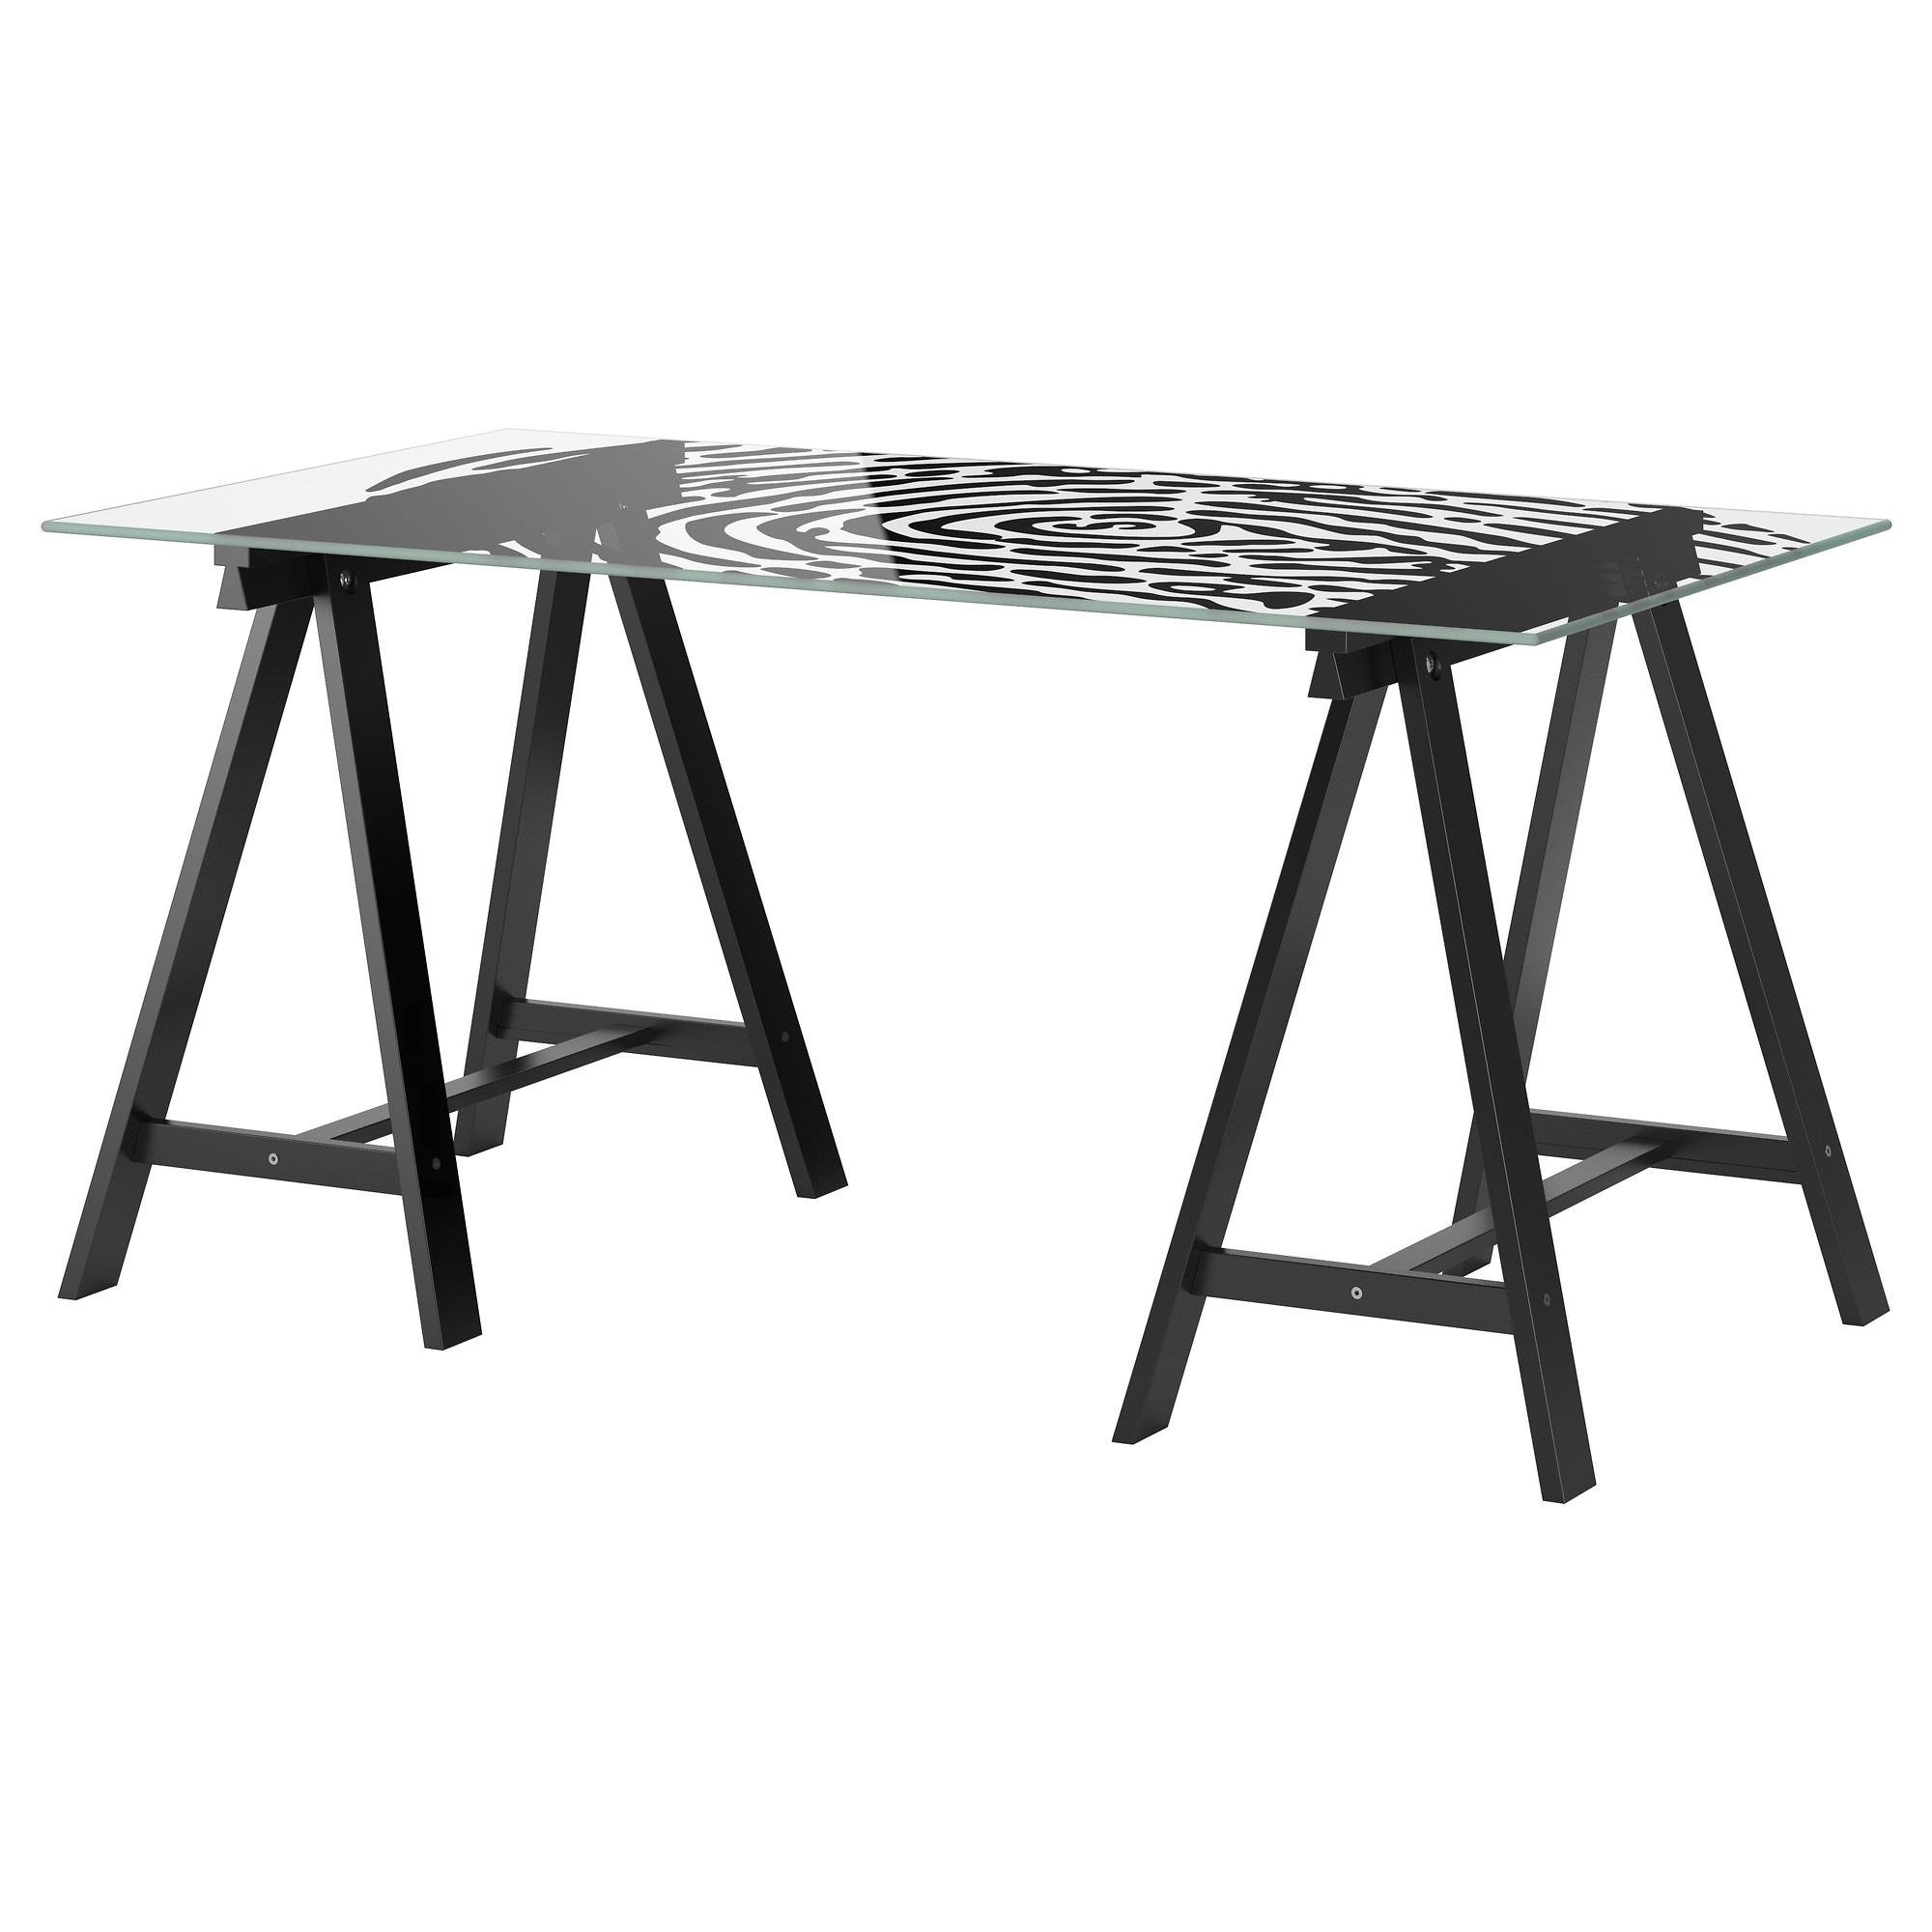 Ikea glass table desk - Glasholm Oddvald Table Glass Fingerprint Pattern Black Length 58 1 4